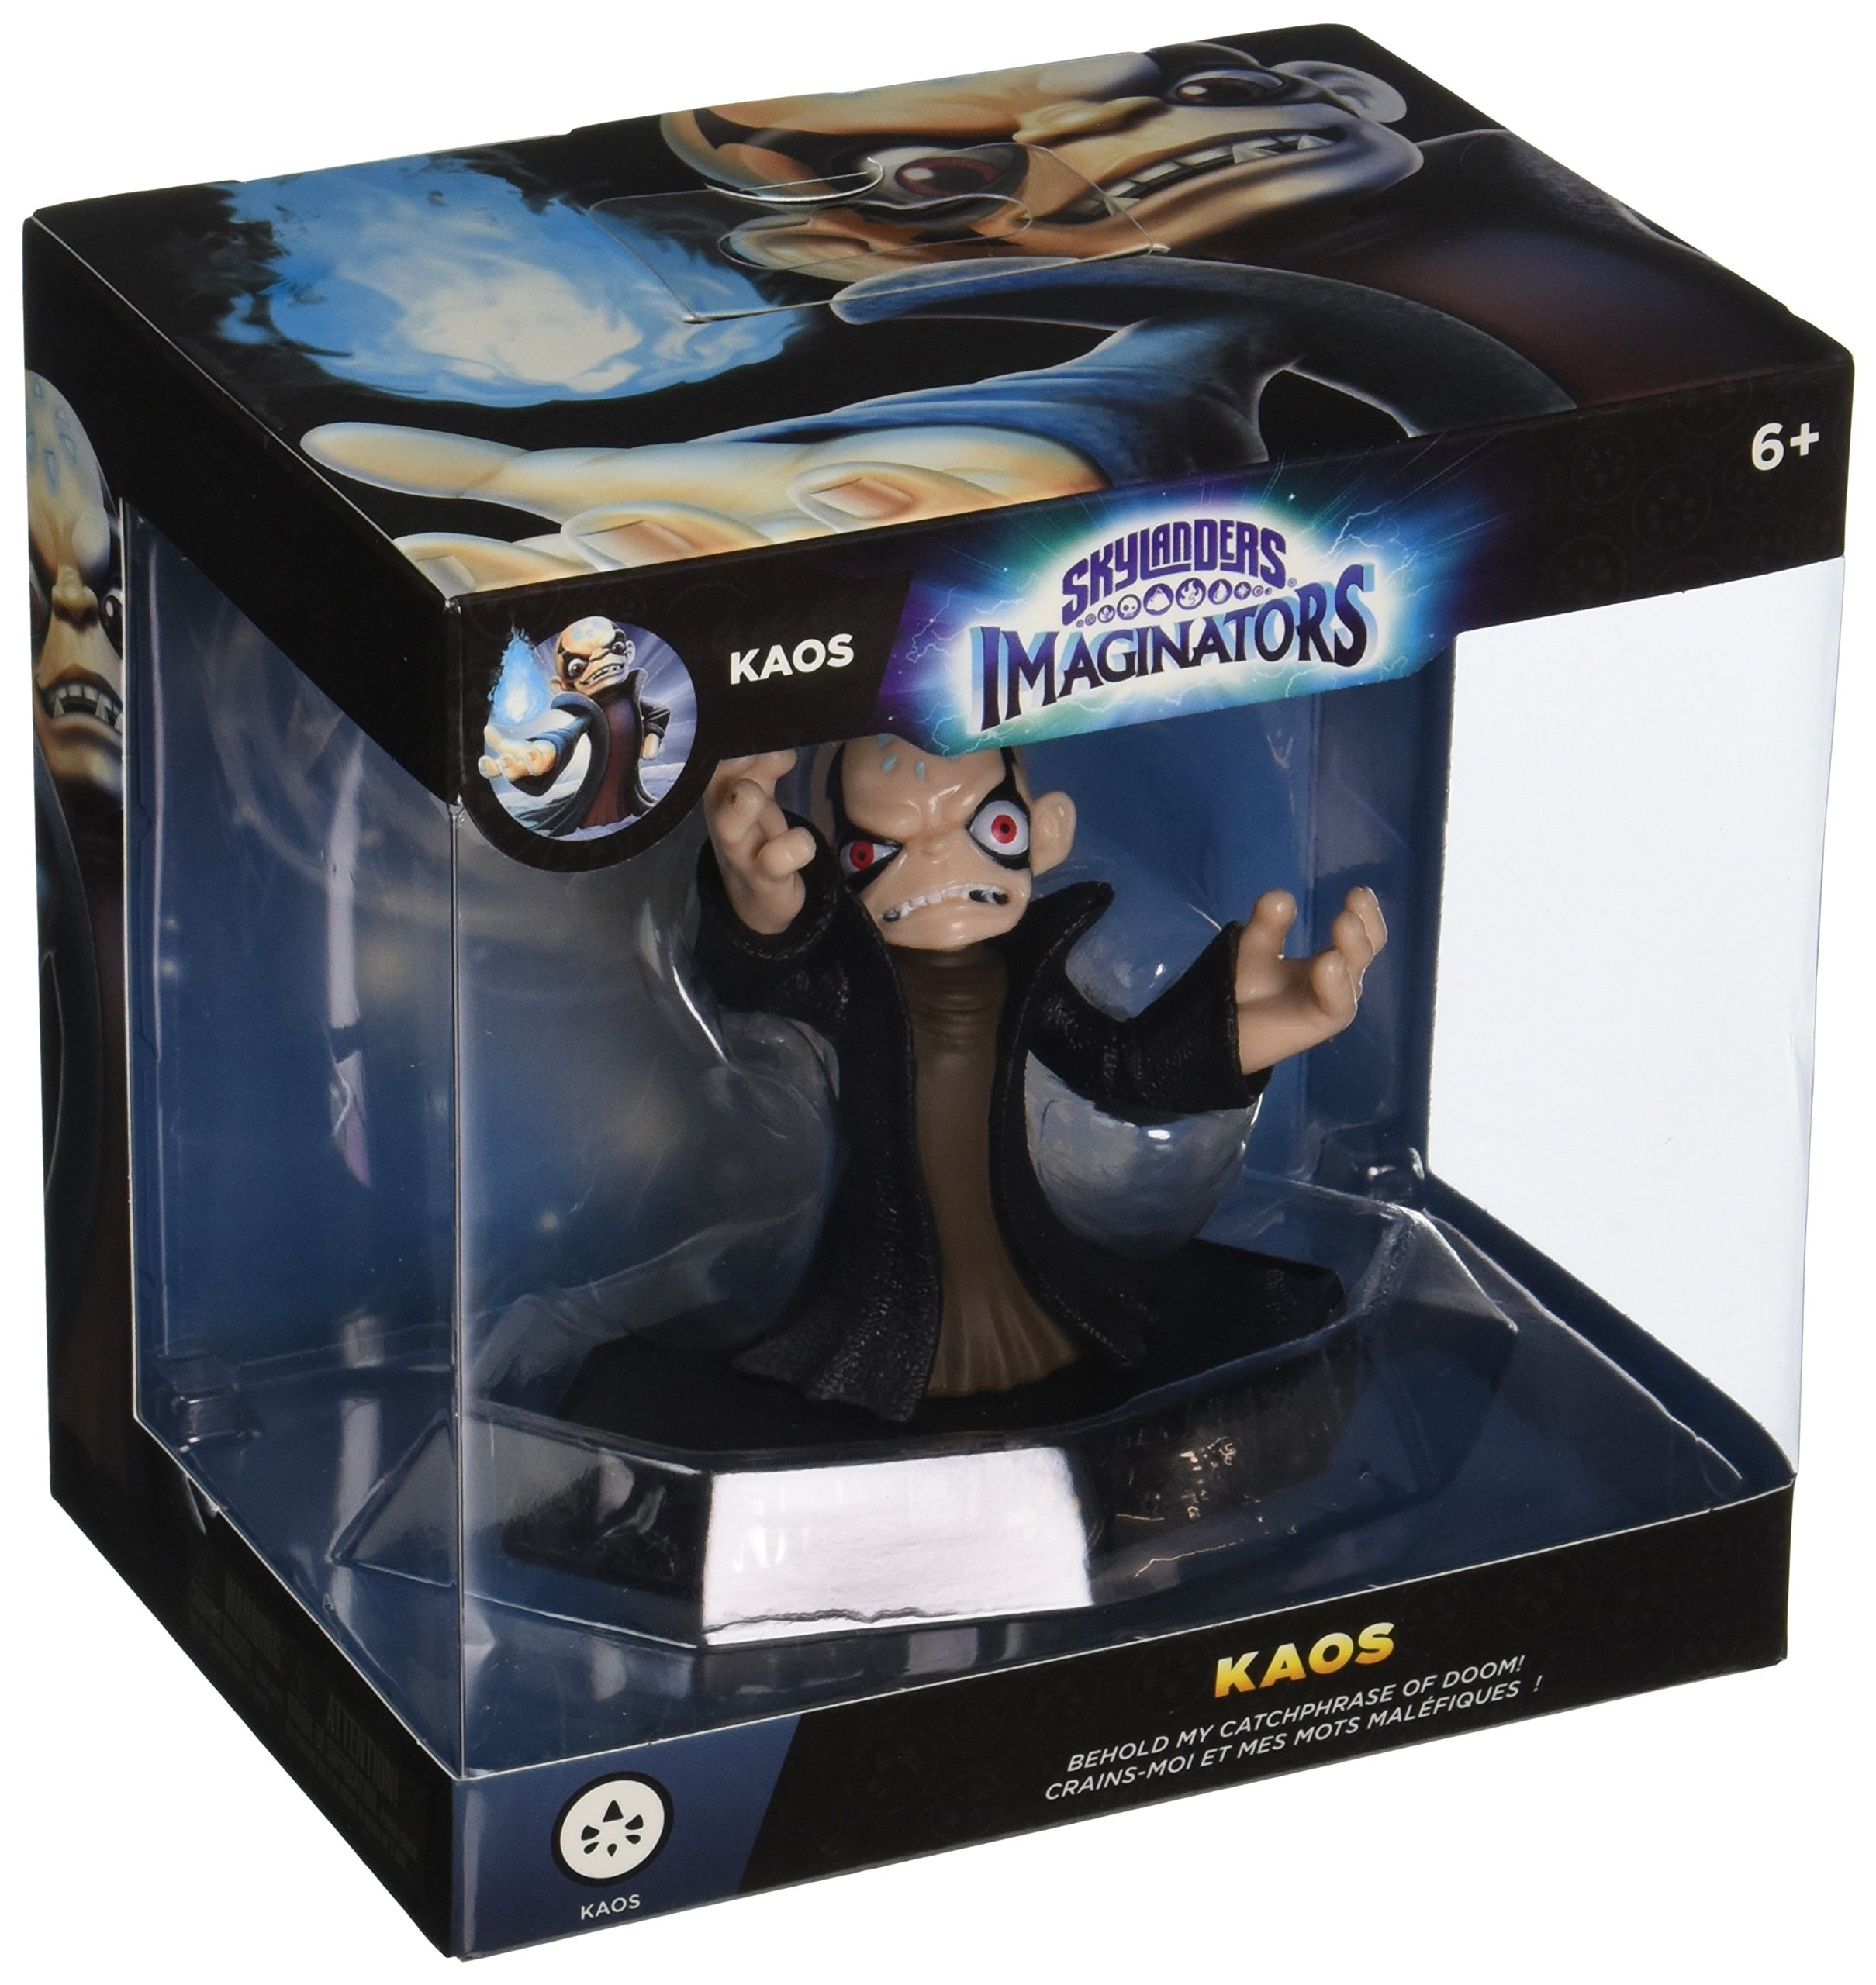 Skylanders Imaginators Kaos - Not Machine Specific by Activision (Image #1)